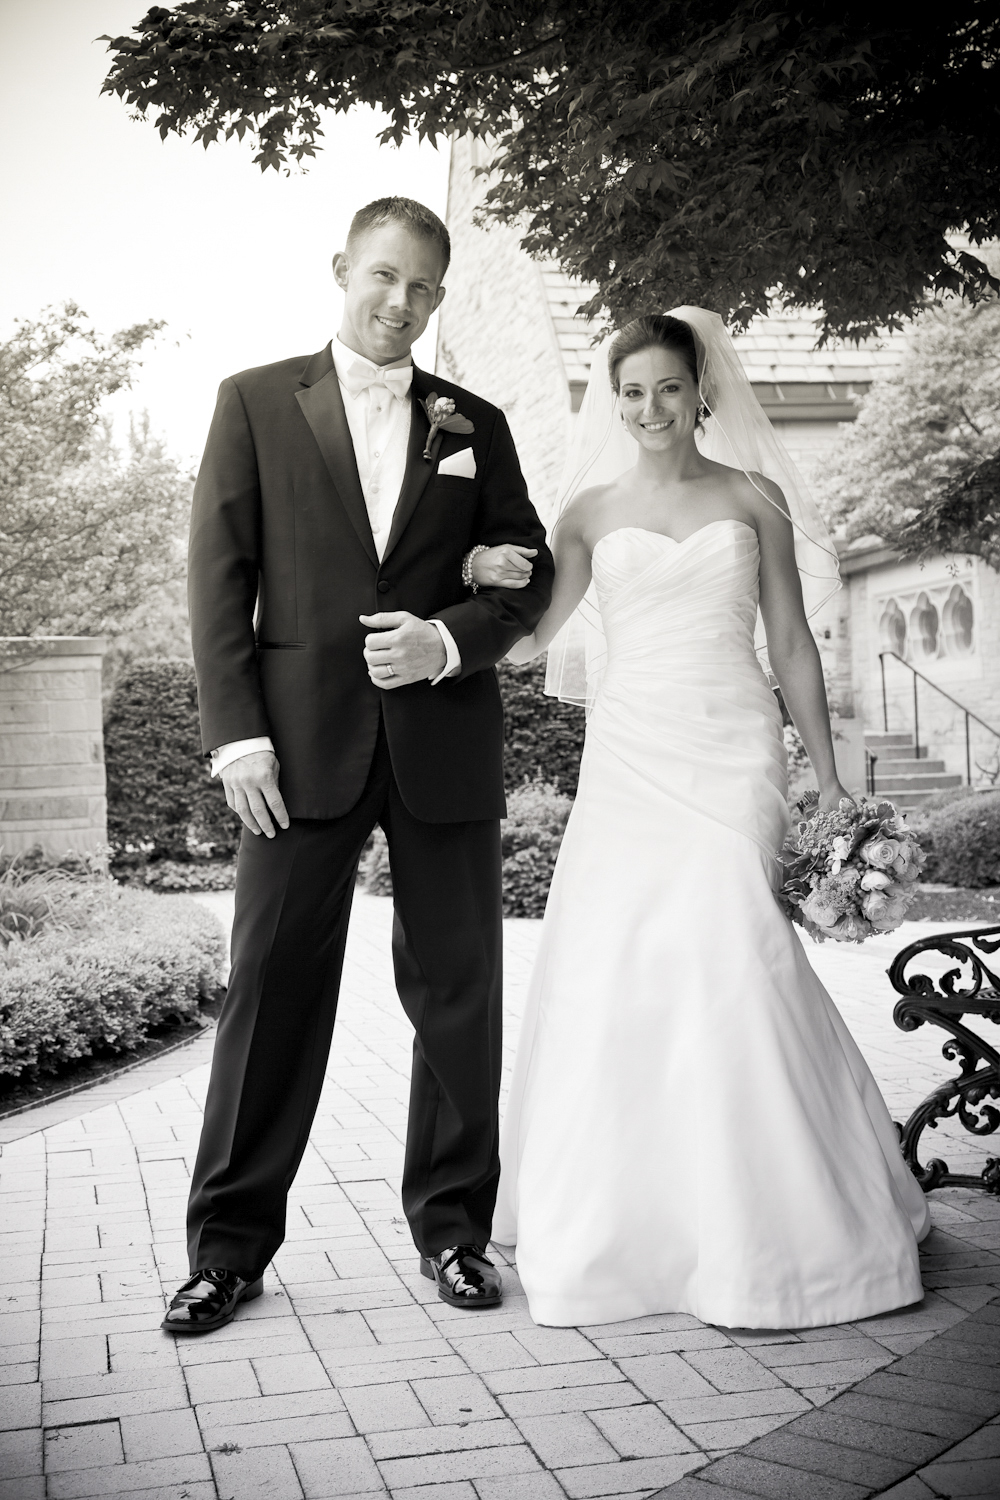 Indianapolis-Indiana-Wedding-Photographer-Crowes-Eye-Photography-Saint-paul-Bride-Groom.jpg